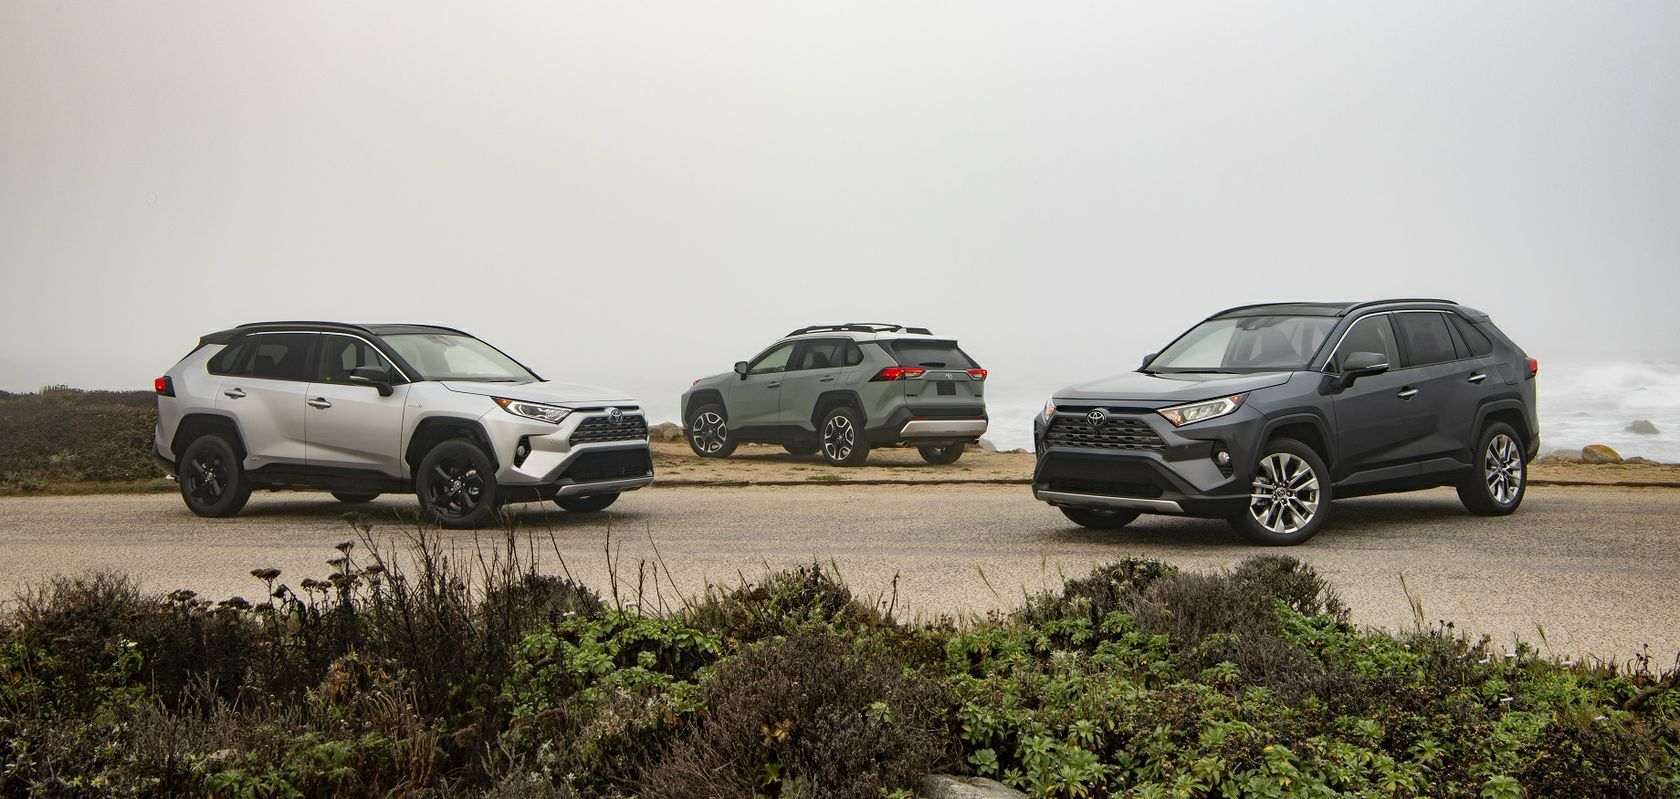 2019 Toyota RAV4 Group 01